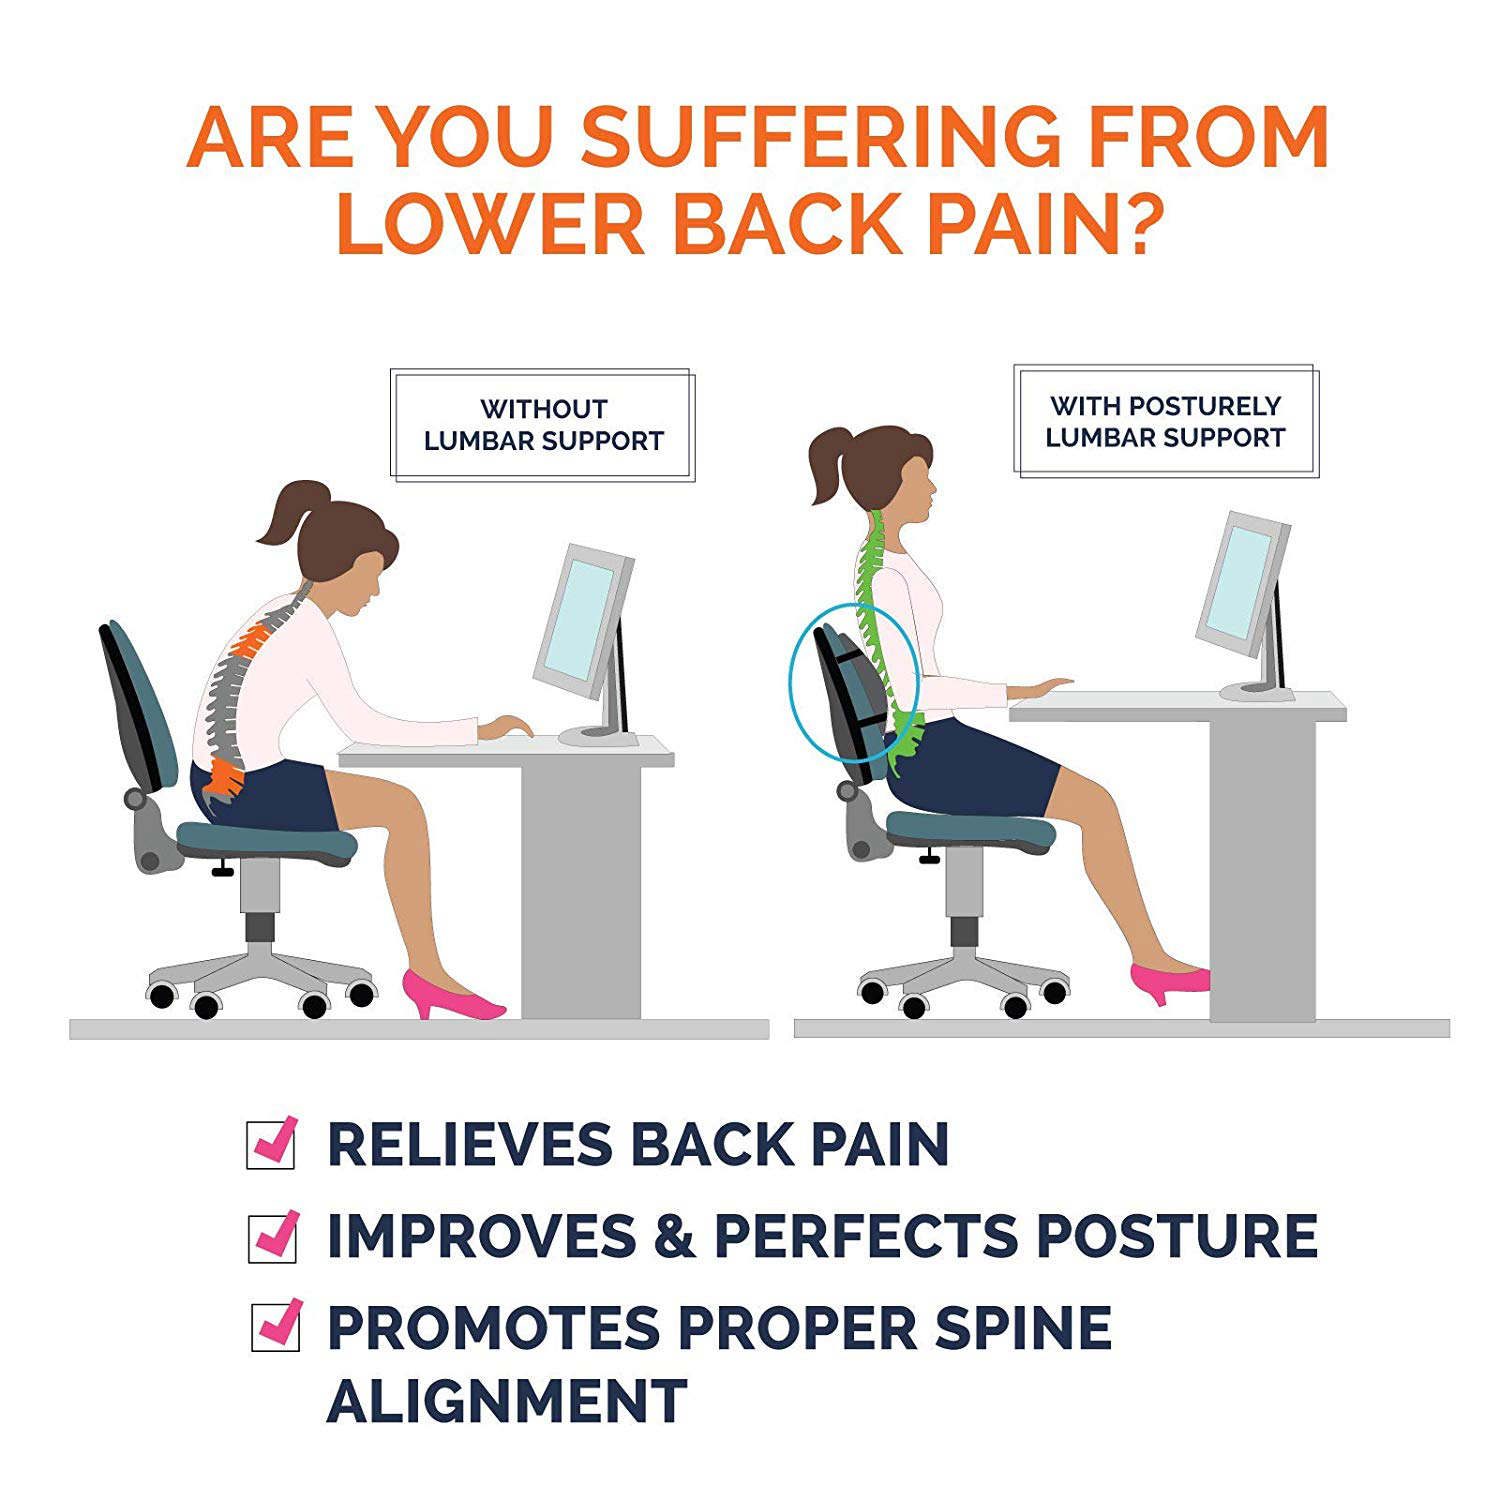 lower back pain relief lumbar support pillow premium memory foam posture support cushion for office chair car sofa wheelchair